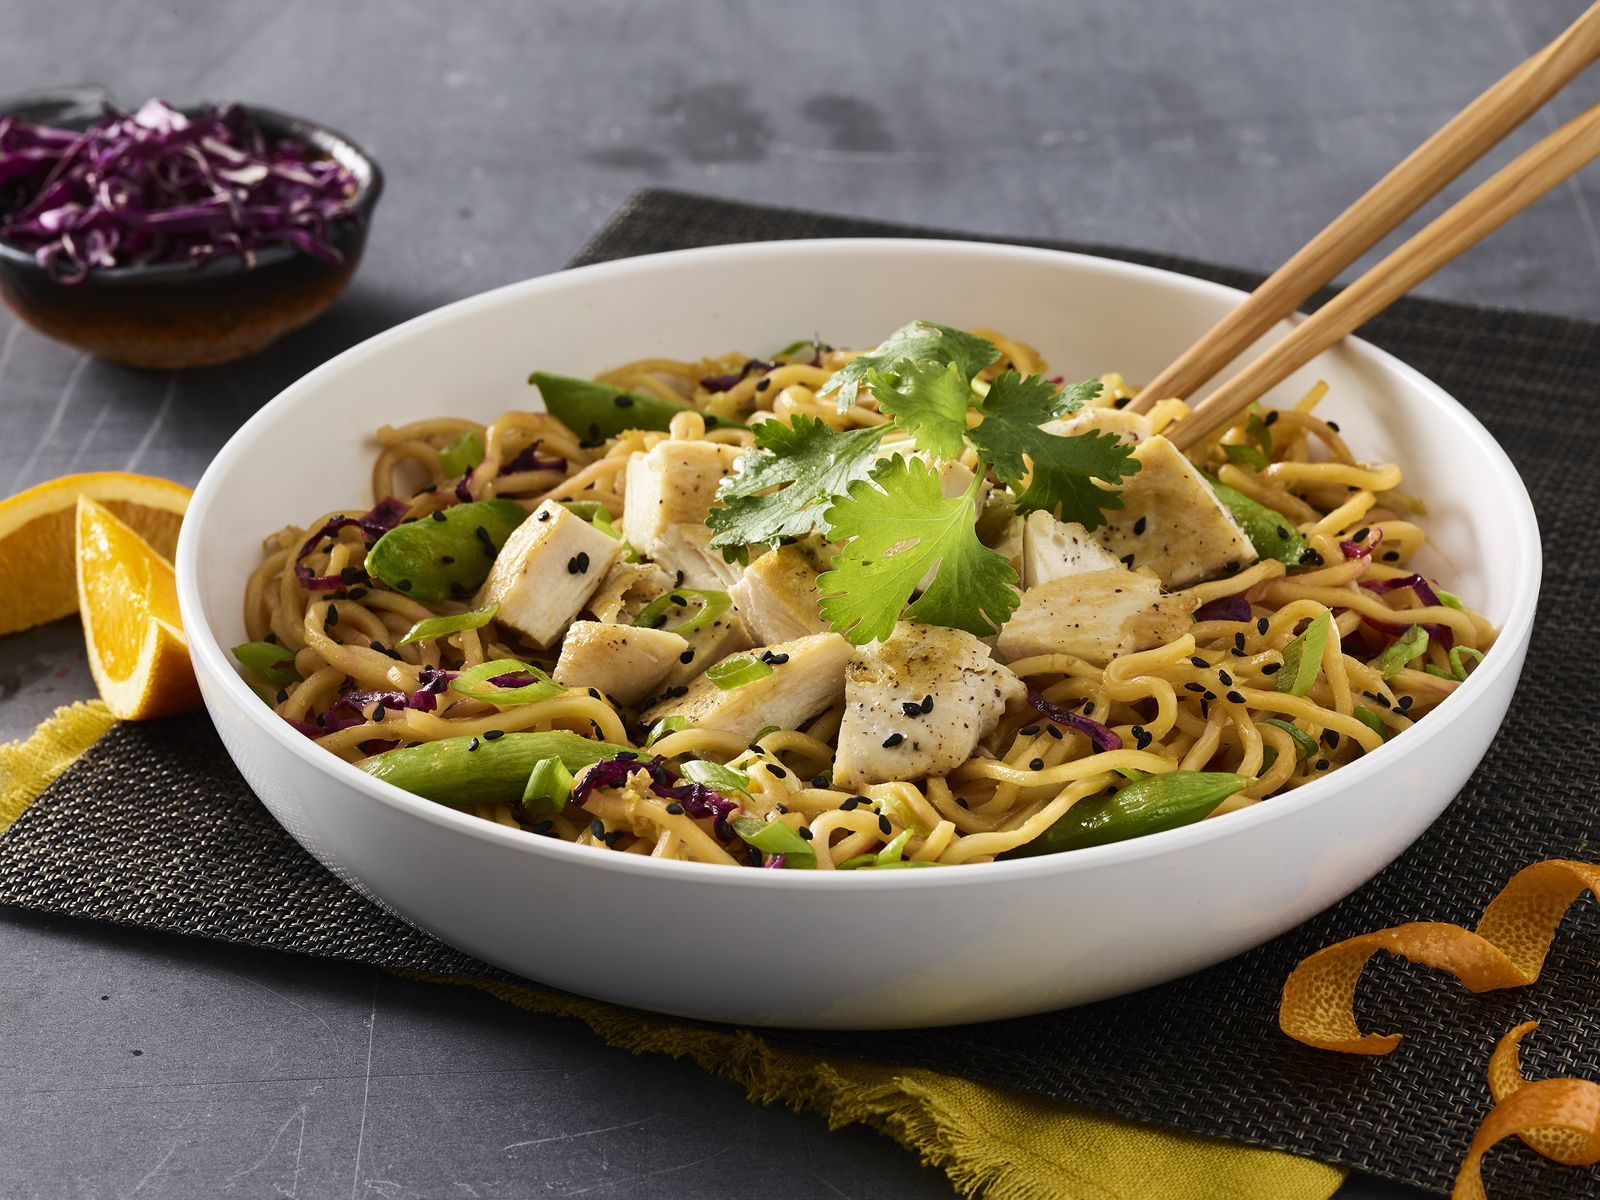 Noodles & Company Kicks Off The New Year With Fresh Additions To Menu